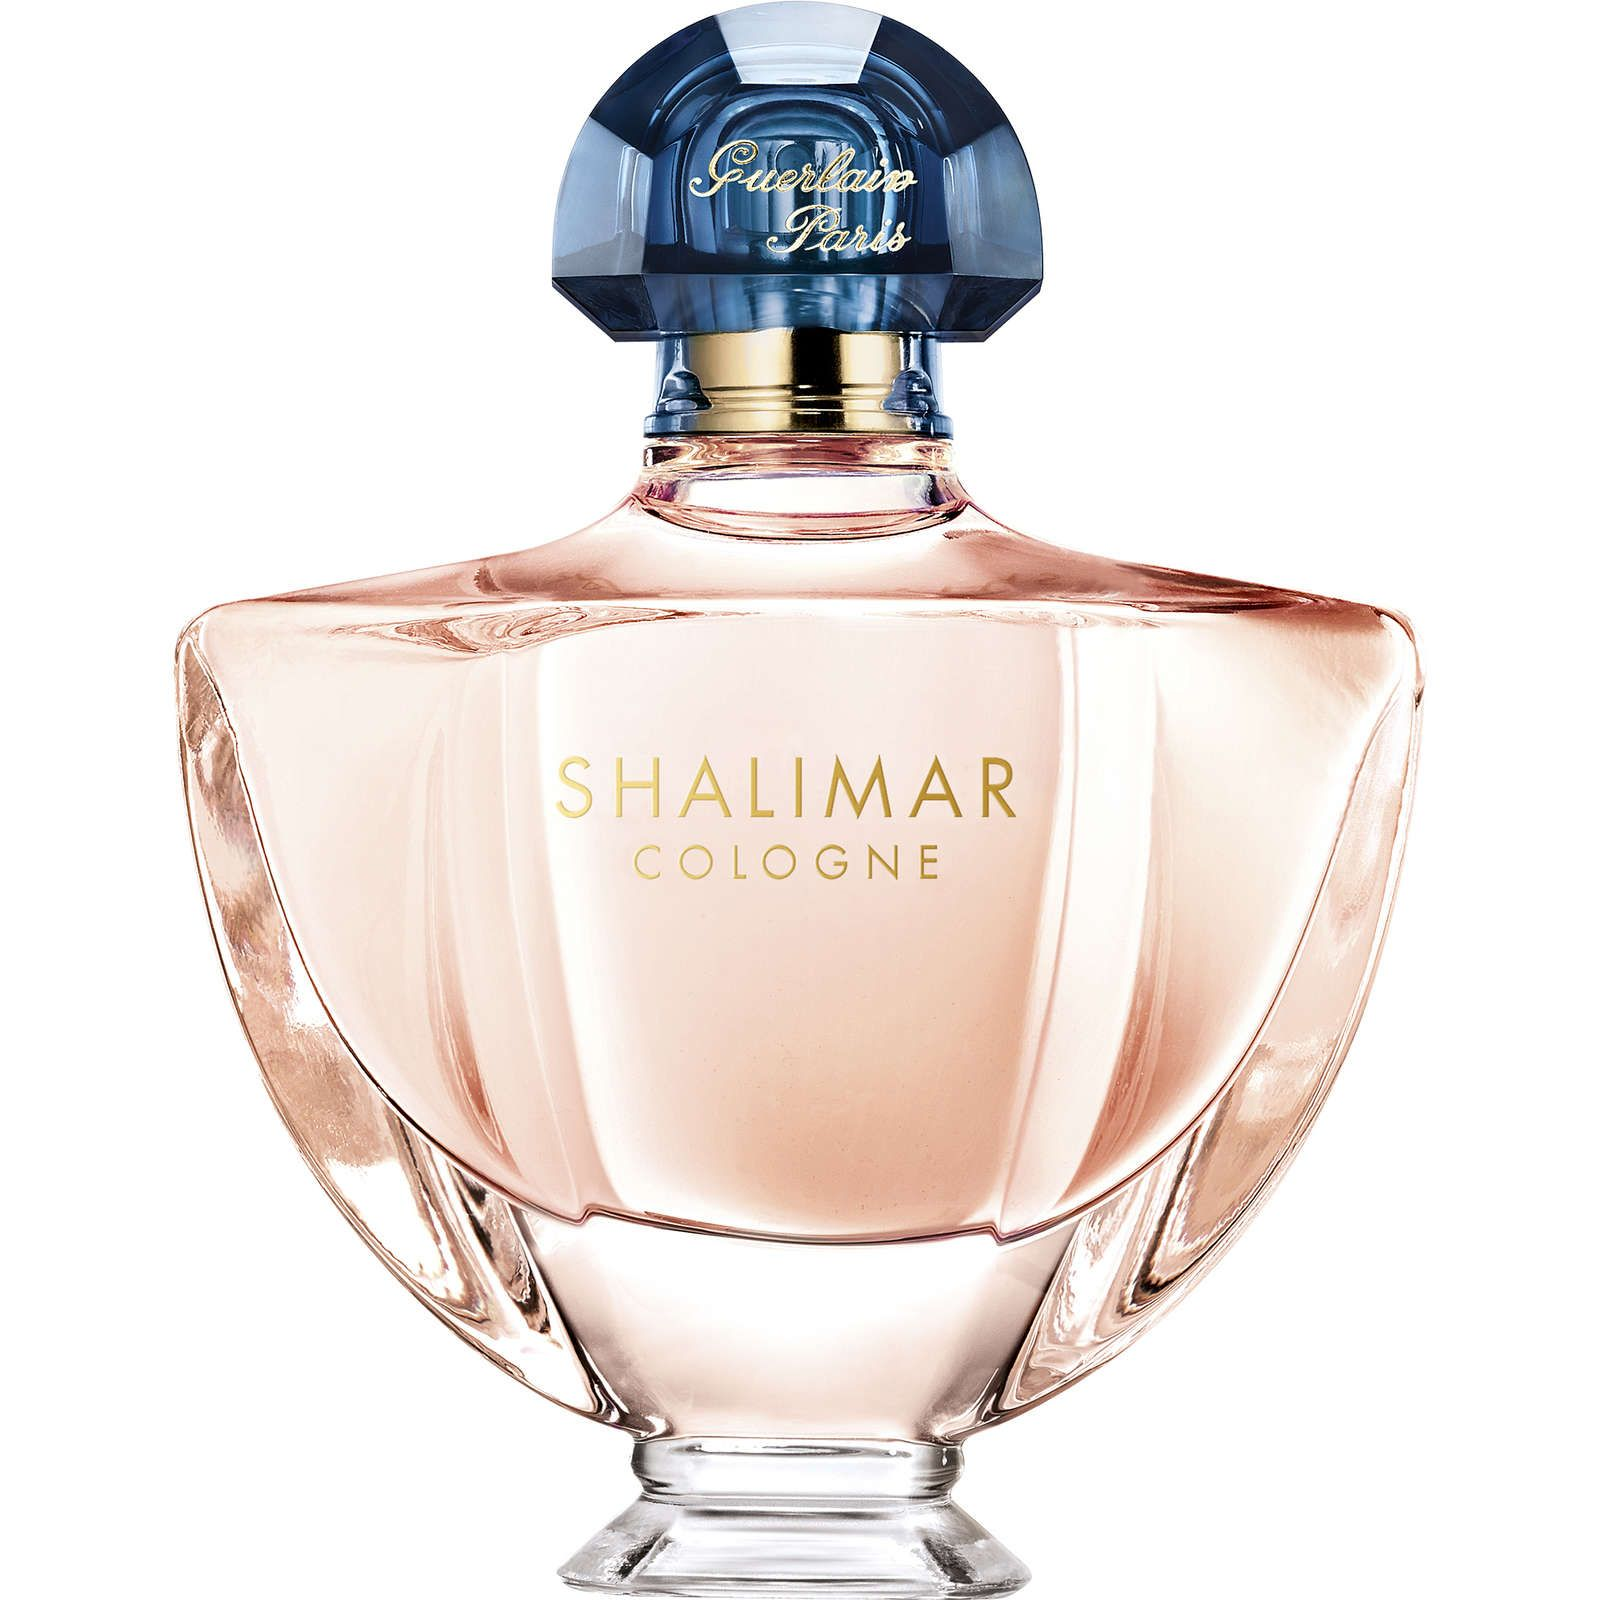 CologneWhite Perfume GuerlainShalimar Back Products Reviews 80nvmwNO